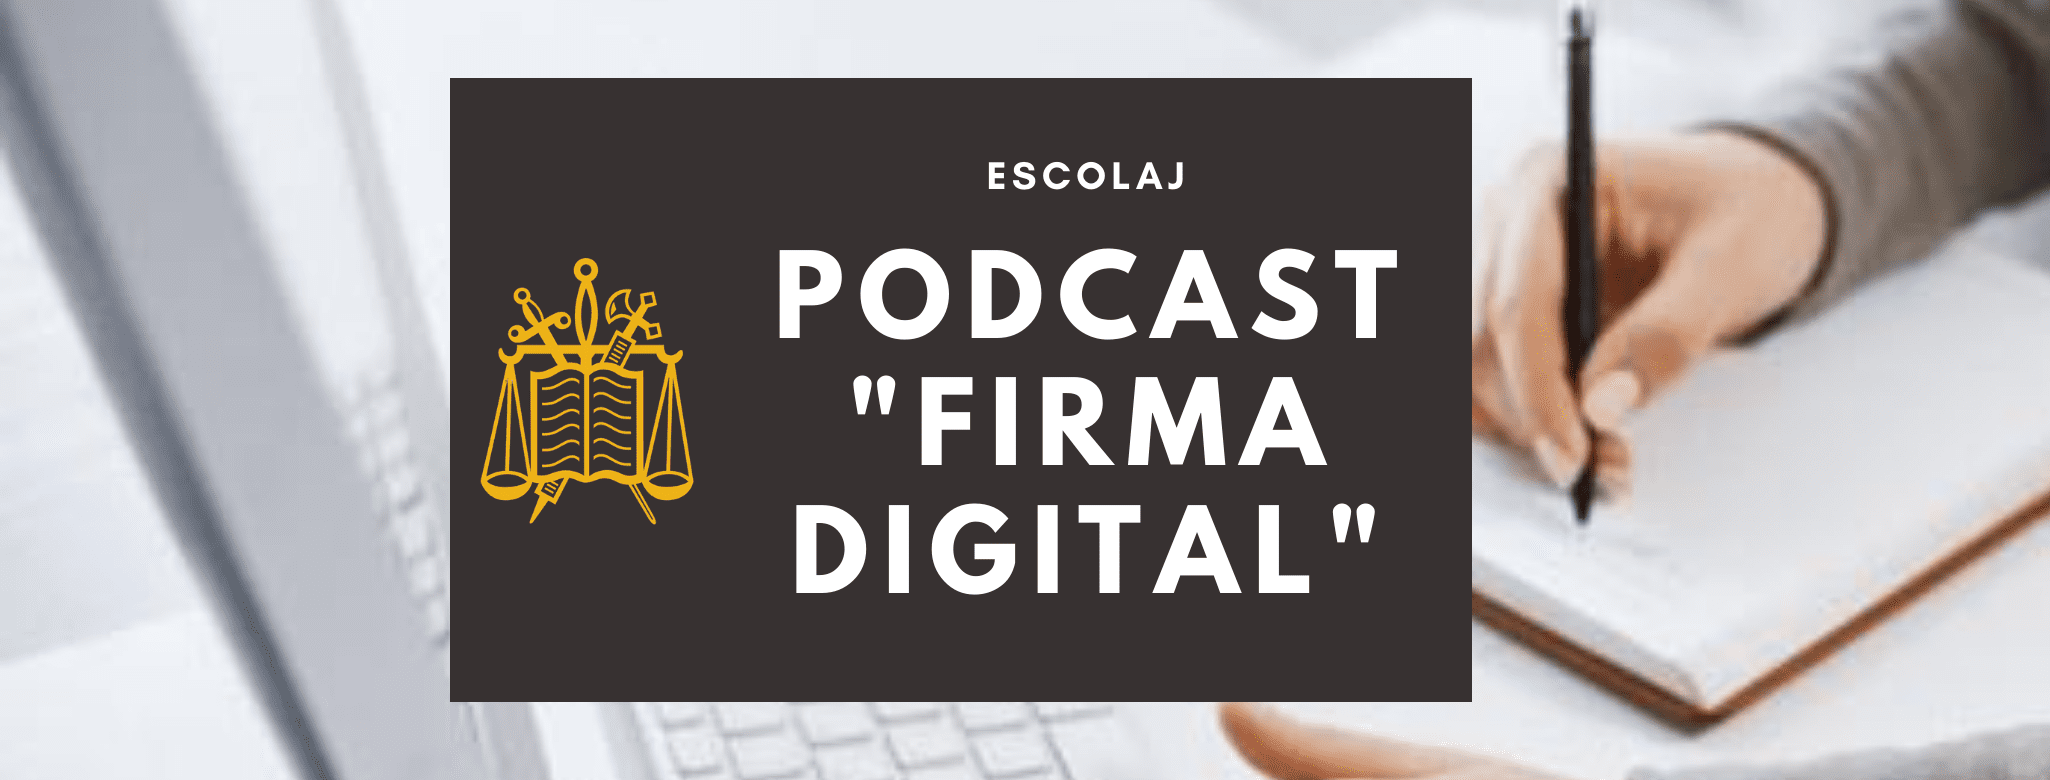 Podcast ESCOLAJ pdf y la fi